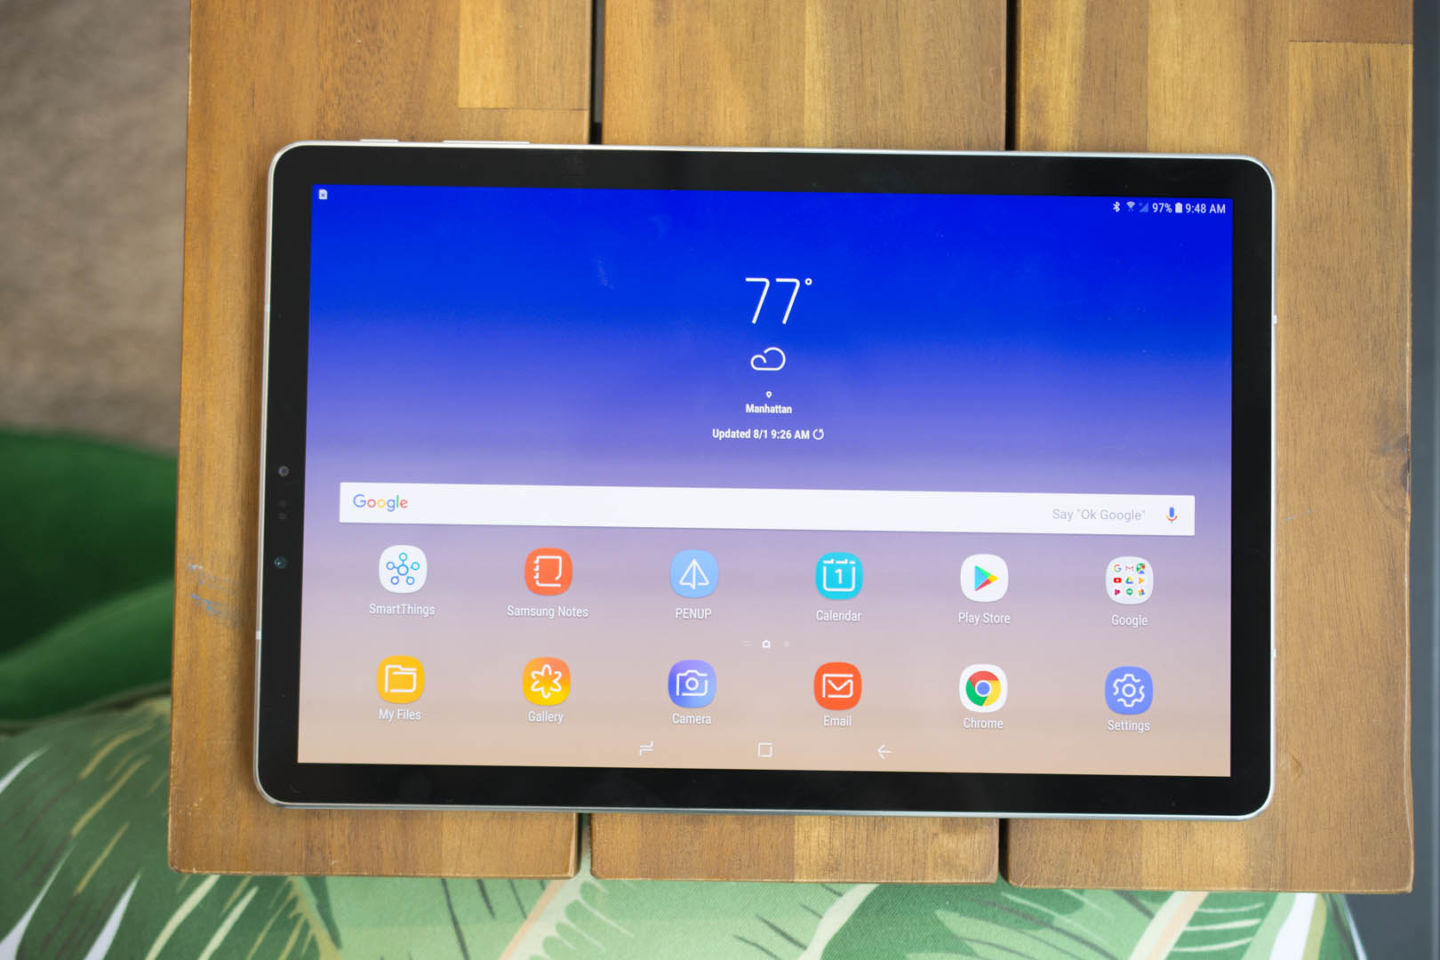 Galaxy Tab S4 review: Even Samsung's Dex desktop can't save